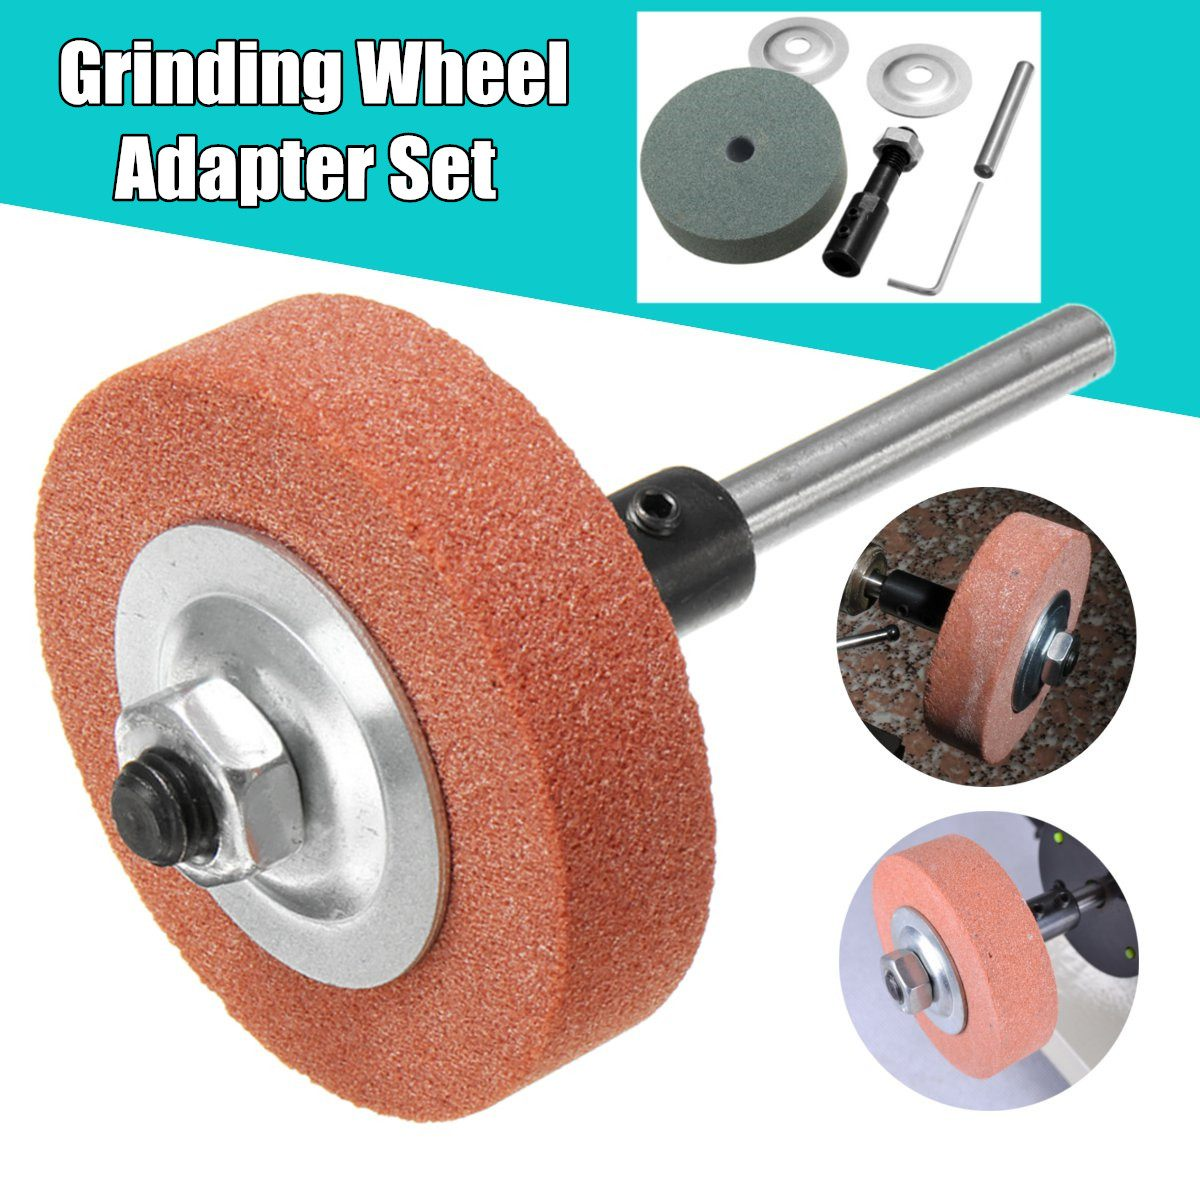 70x20x10mm 120-150 Grit Grinding Wheel Adapter Set Abrasive Tools Electric Drill Change Into Grinding Machine Wheel Plus grinding tool for electric drill